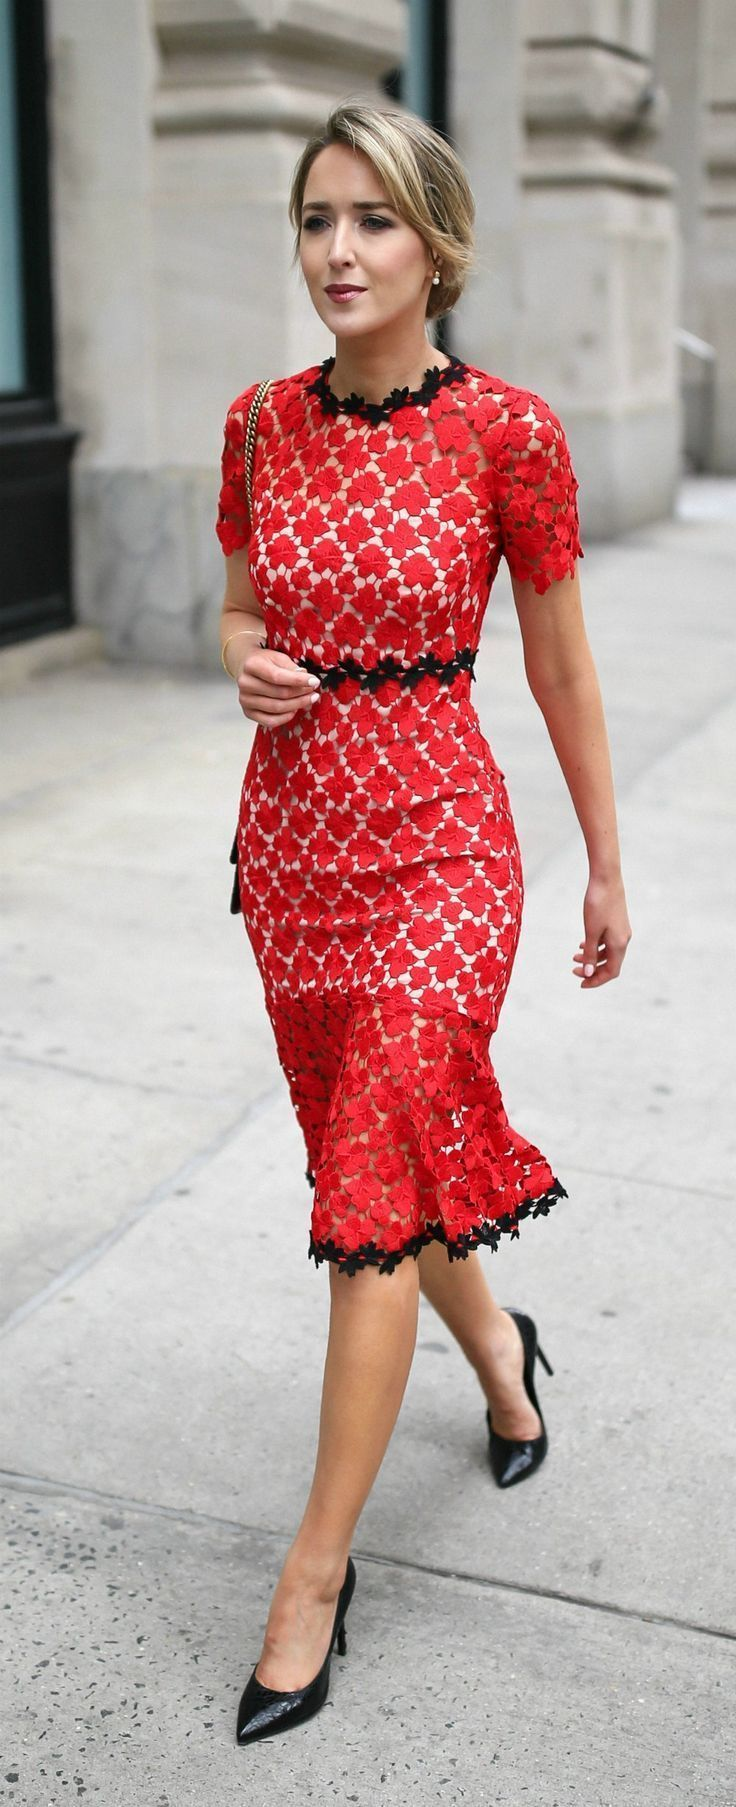 What Color Shoes To Wear With Red Dress Tus Me Gusta En